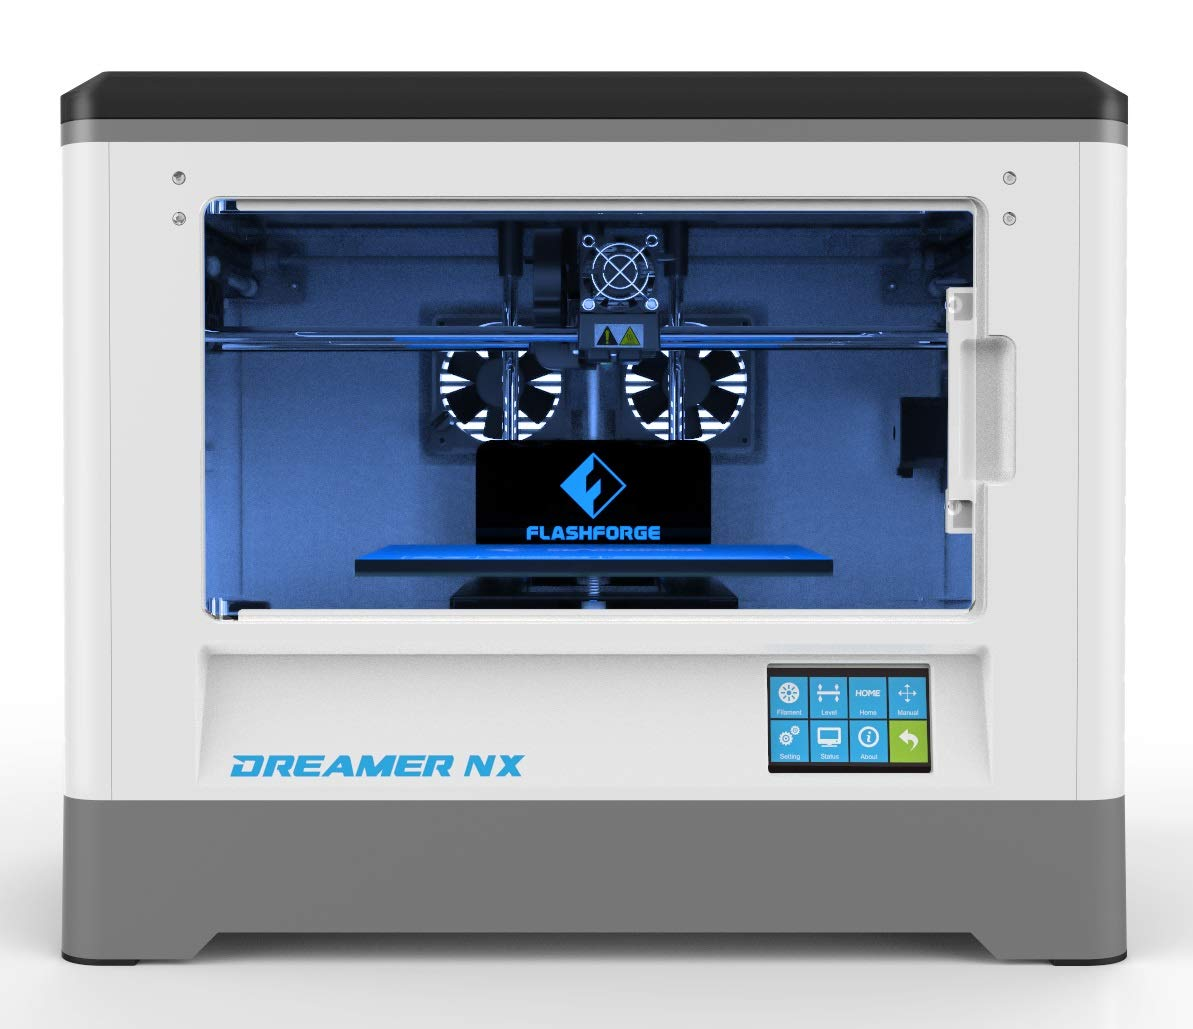 FlashForge Dreamer NX 3D Printer, Almost Fully Assembly, Works with Various Filaments Like ABS, PLA, PETG and Flexible Ones, Print from Wi-Fi, USB ...